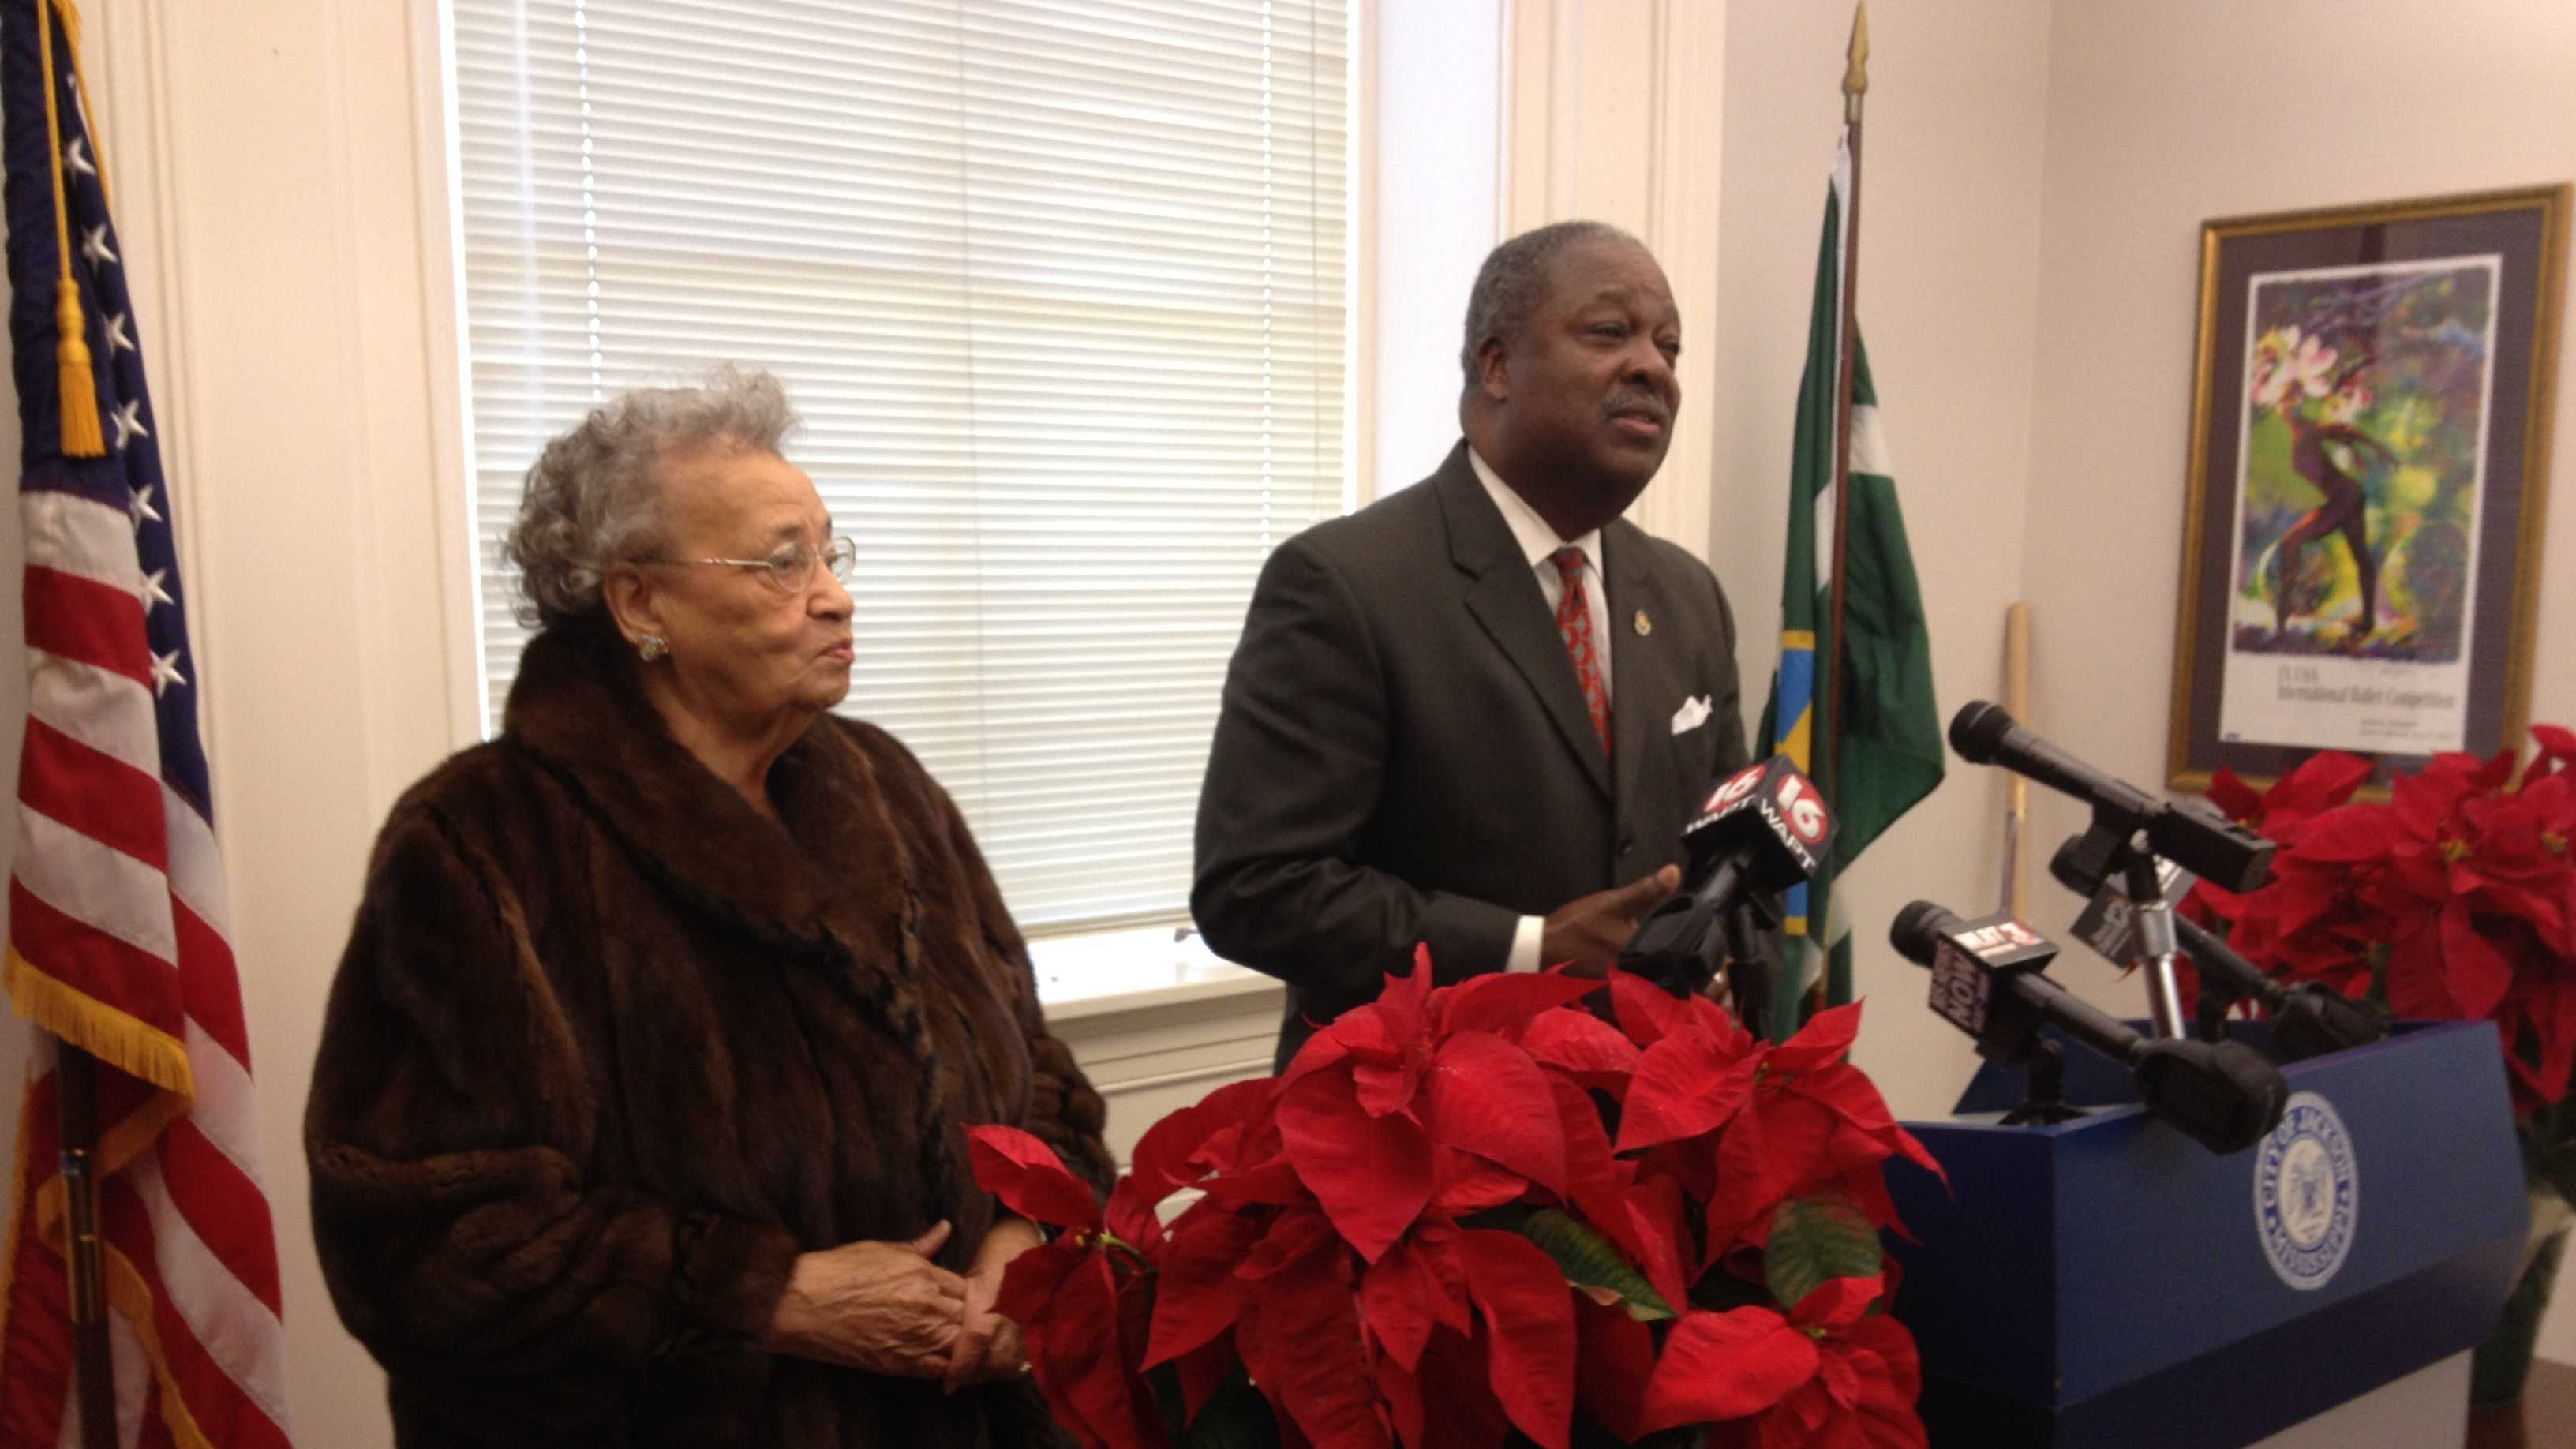 Juadine Cleveland and Mayor Harvey Johnson